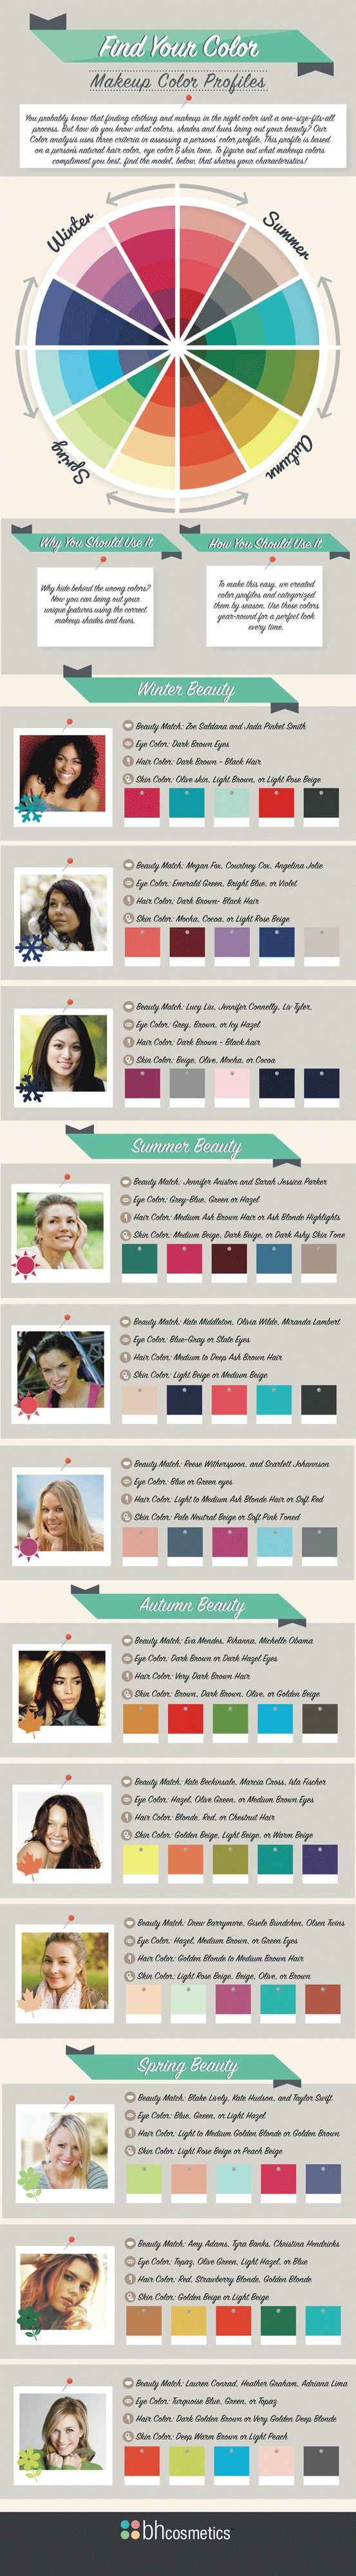 BH Cosmetics color guide